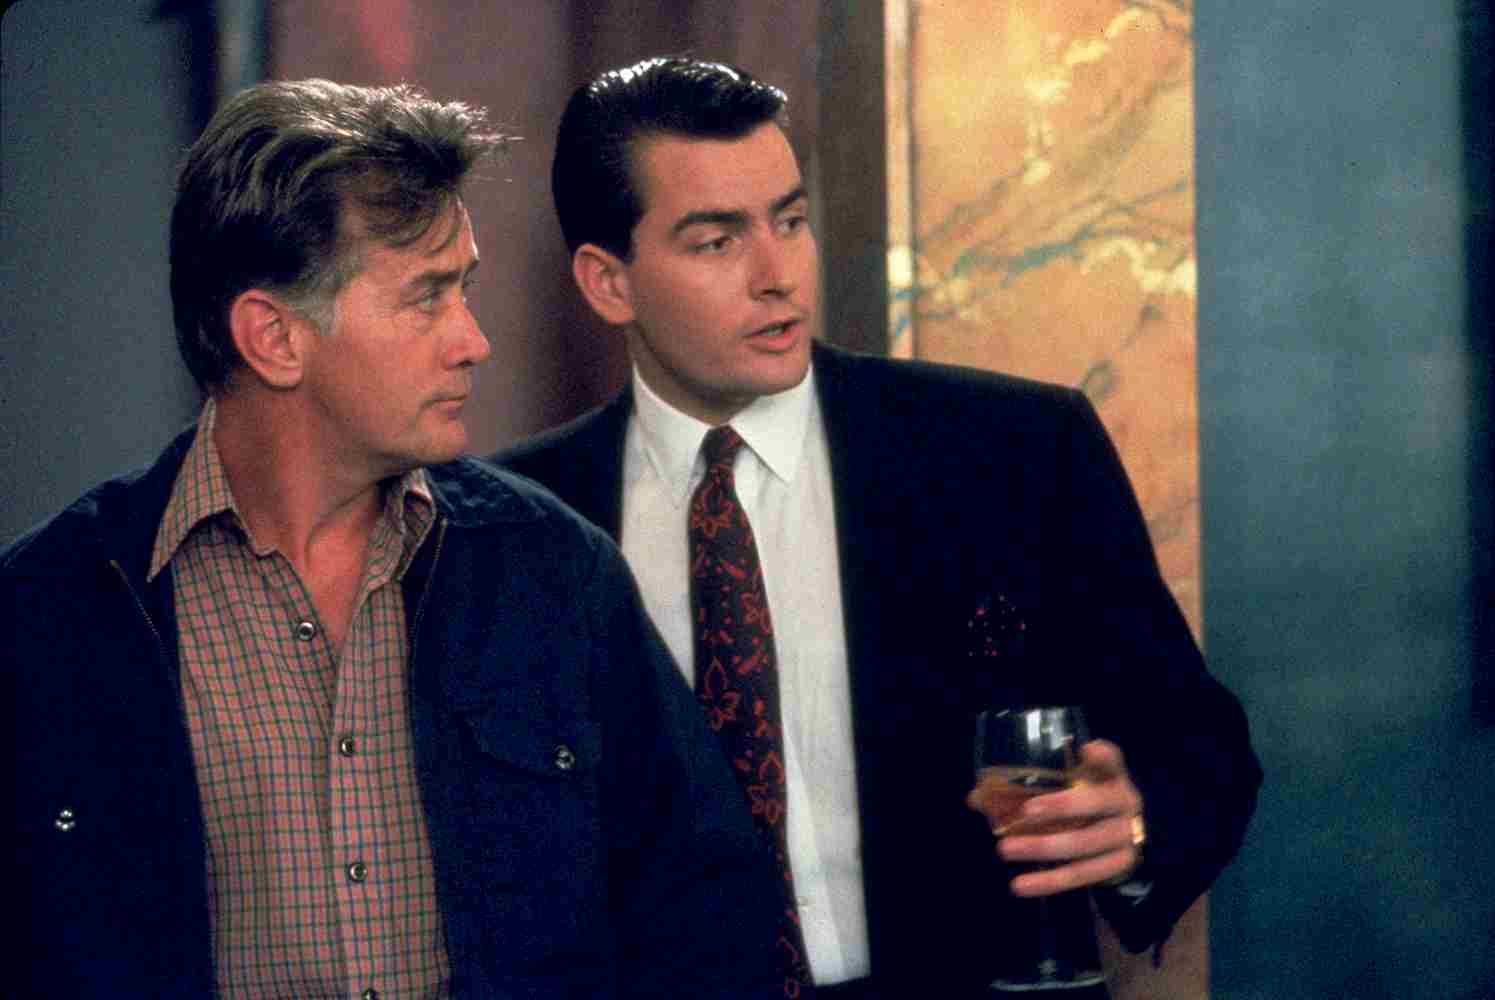 Charlie Sheen and Martin Sheen in Wall Street (1987)